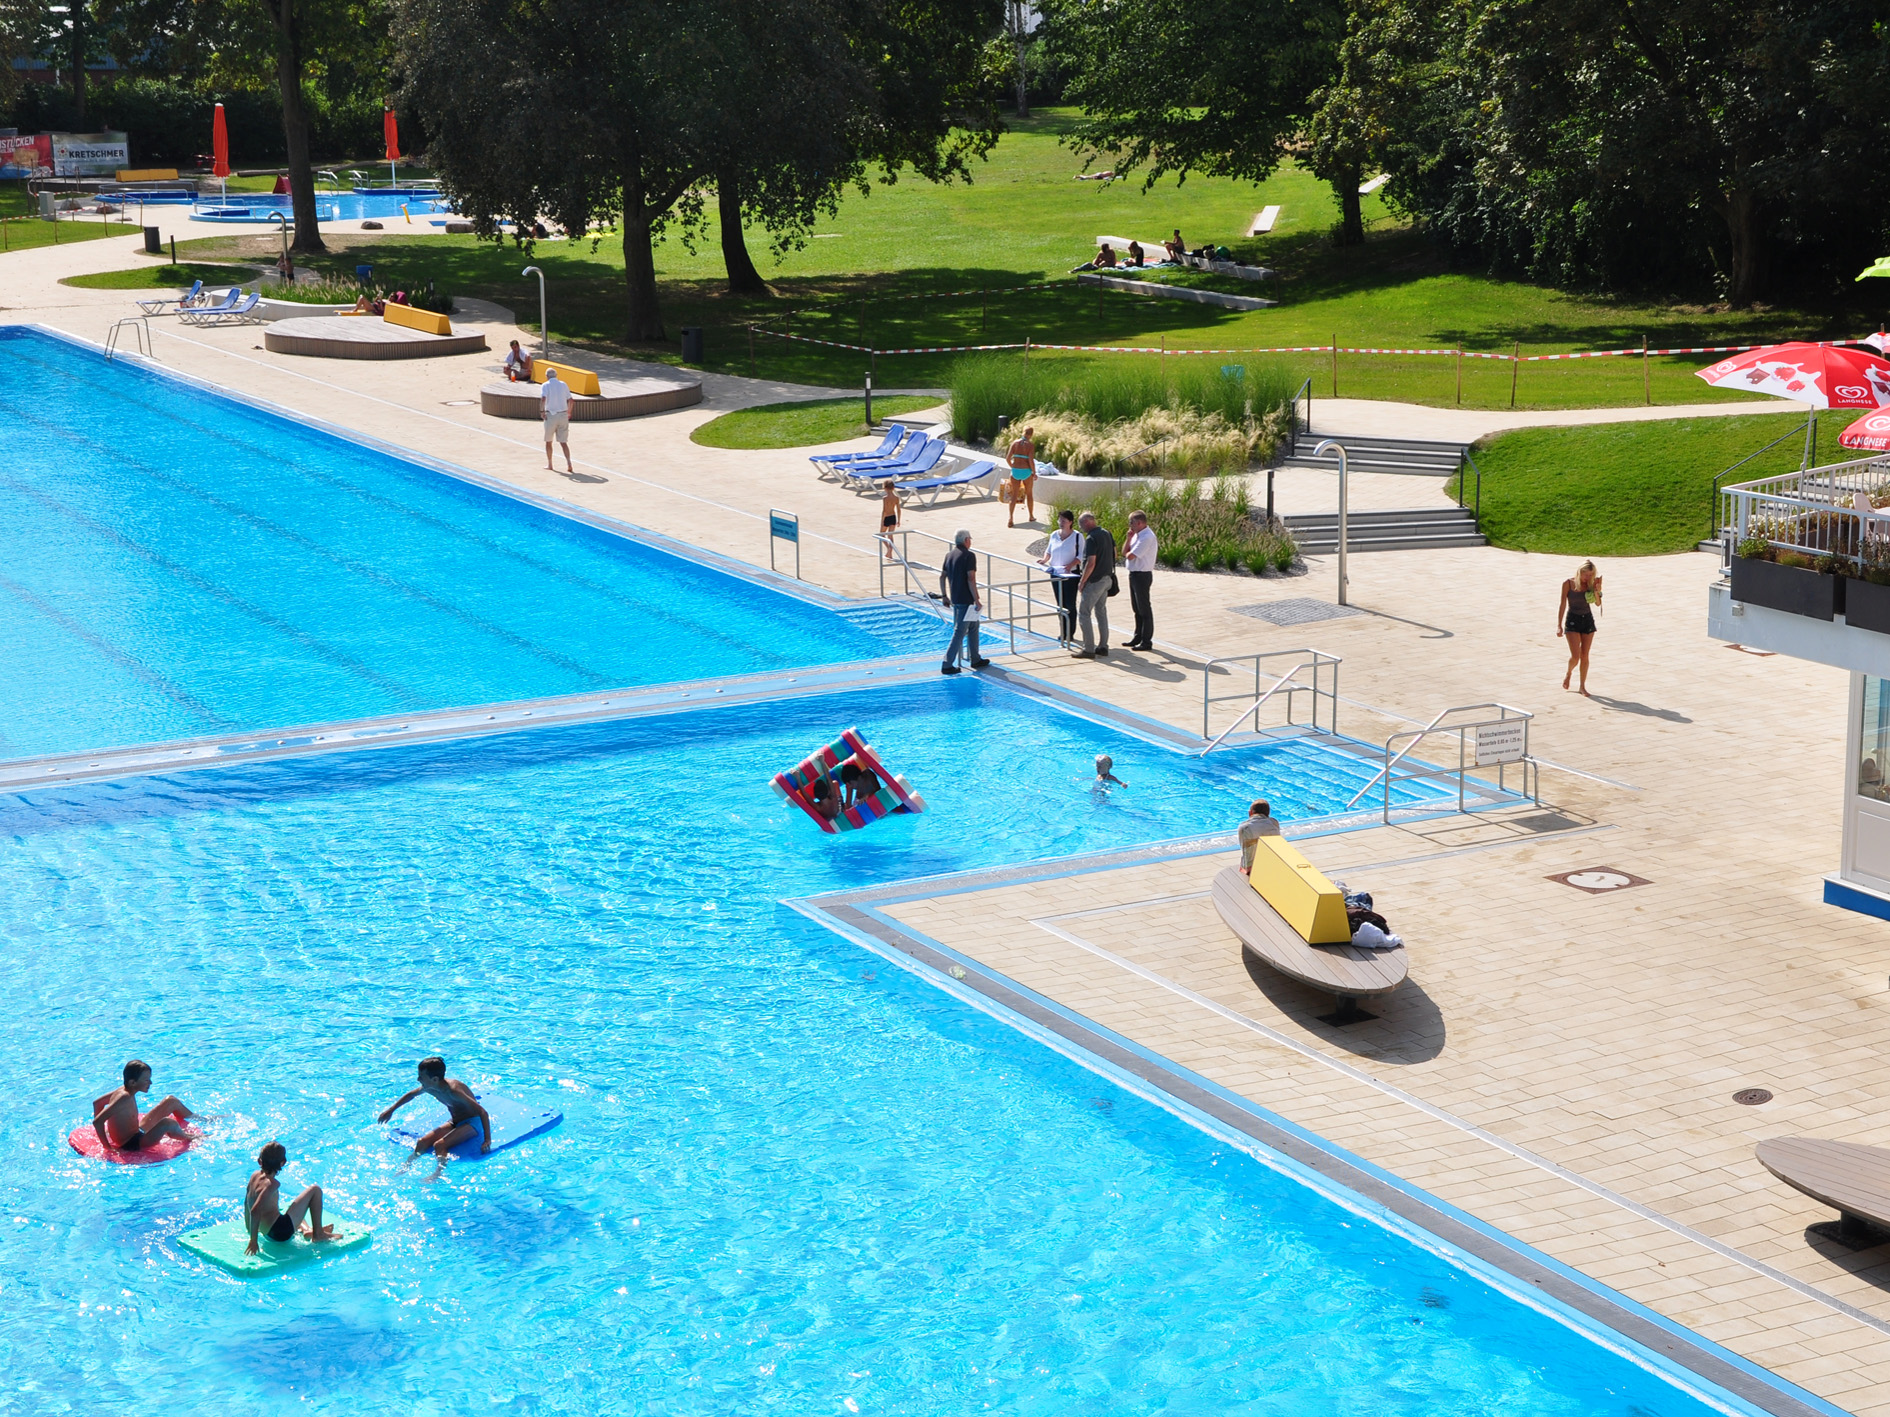 1511_Freibad_Bad_Salzdetfurth_18.jpg